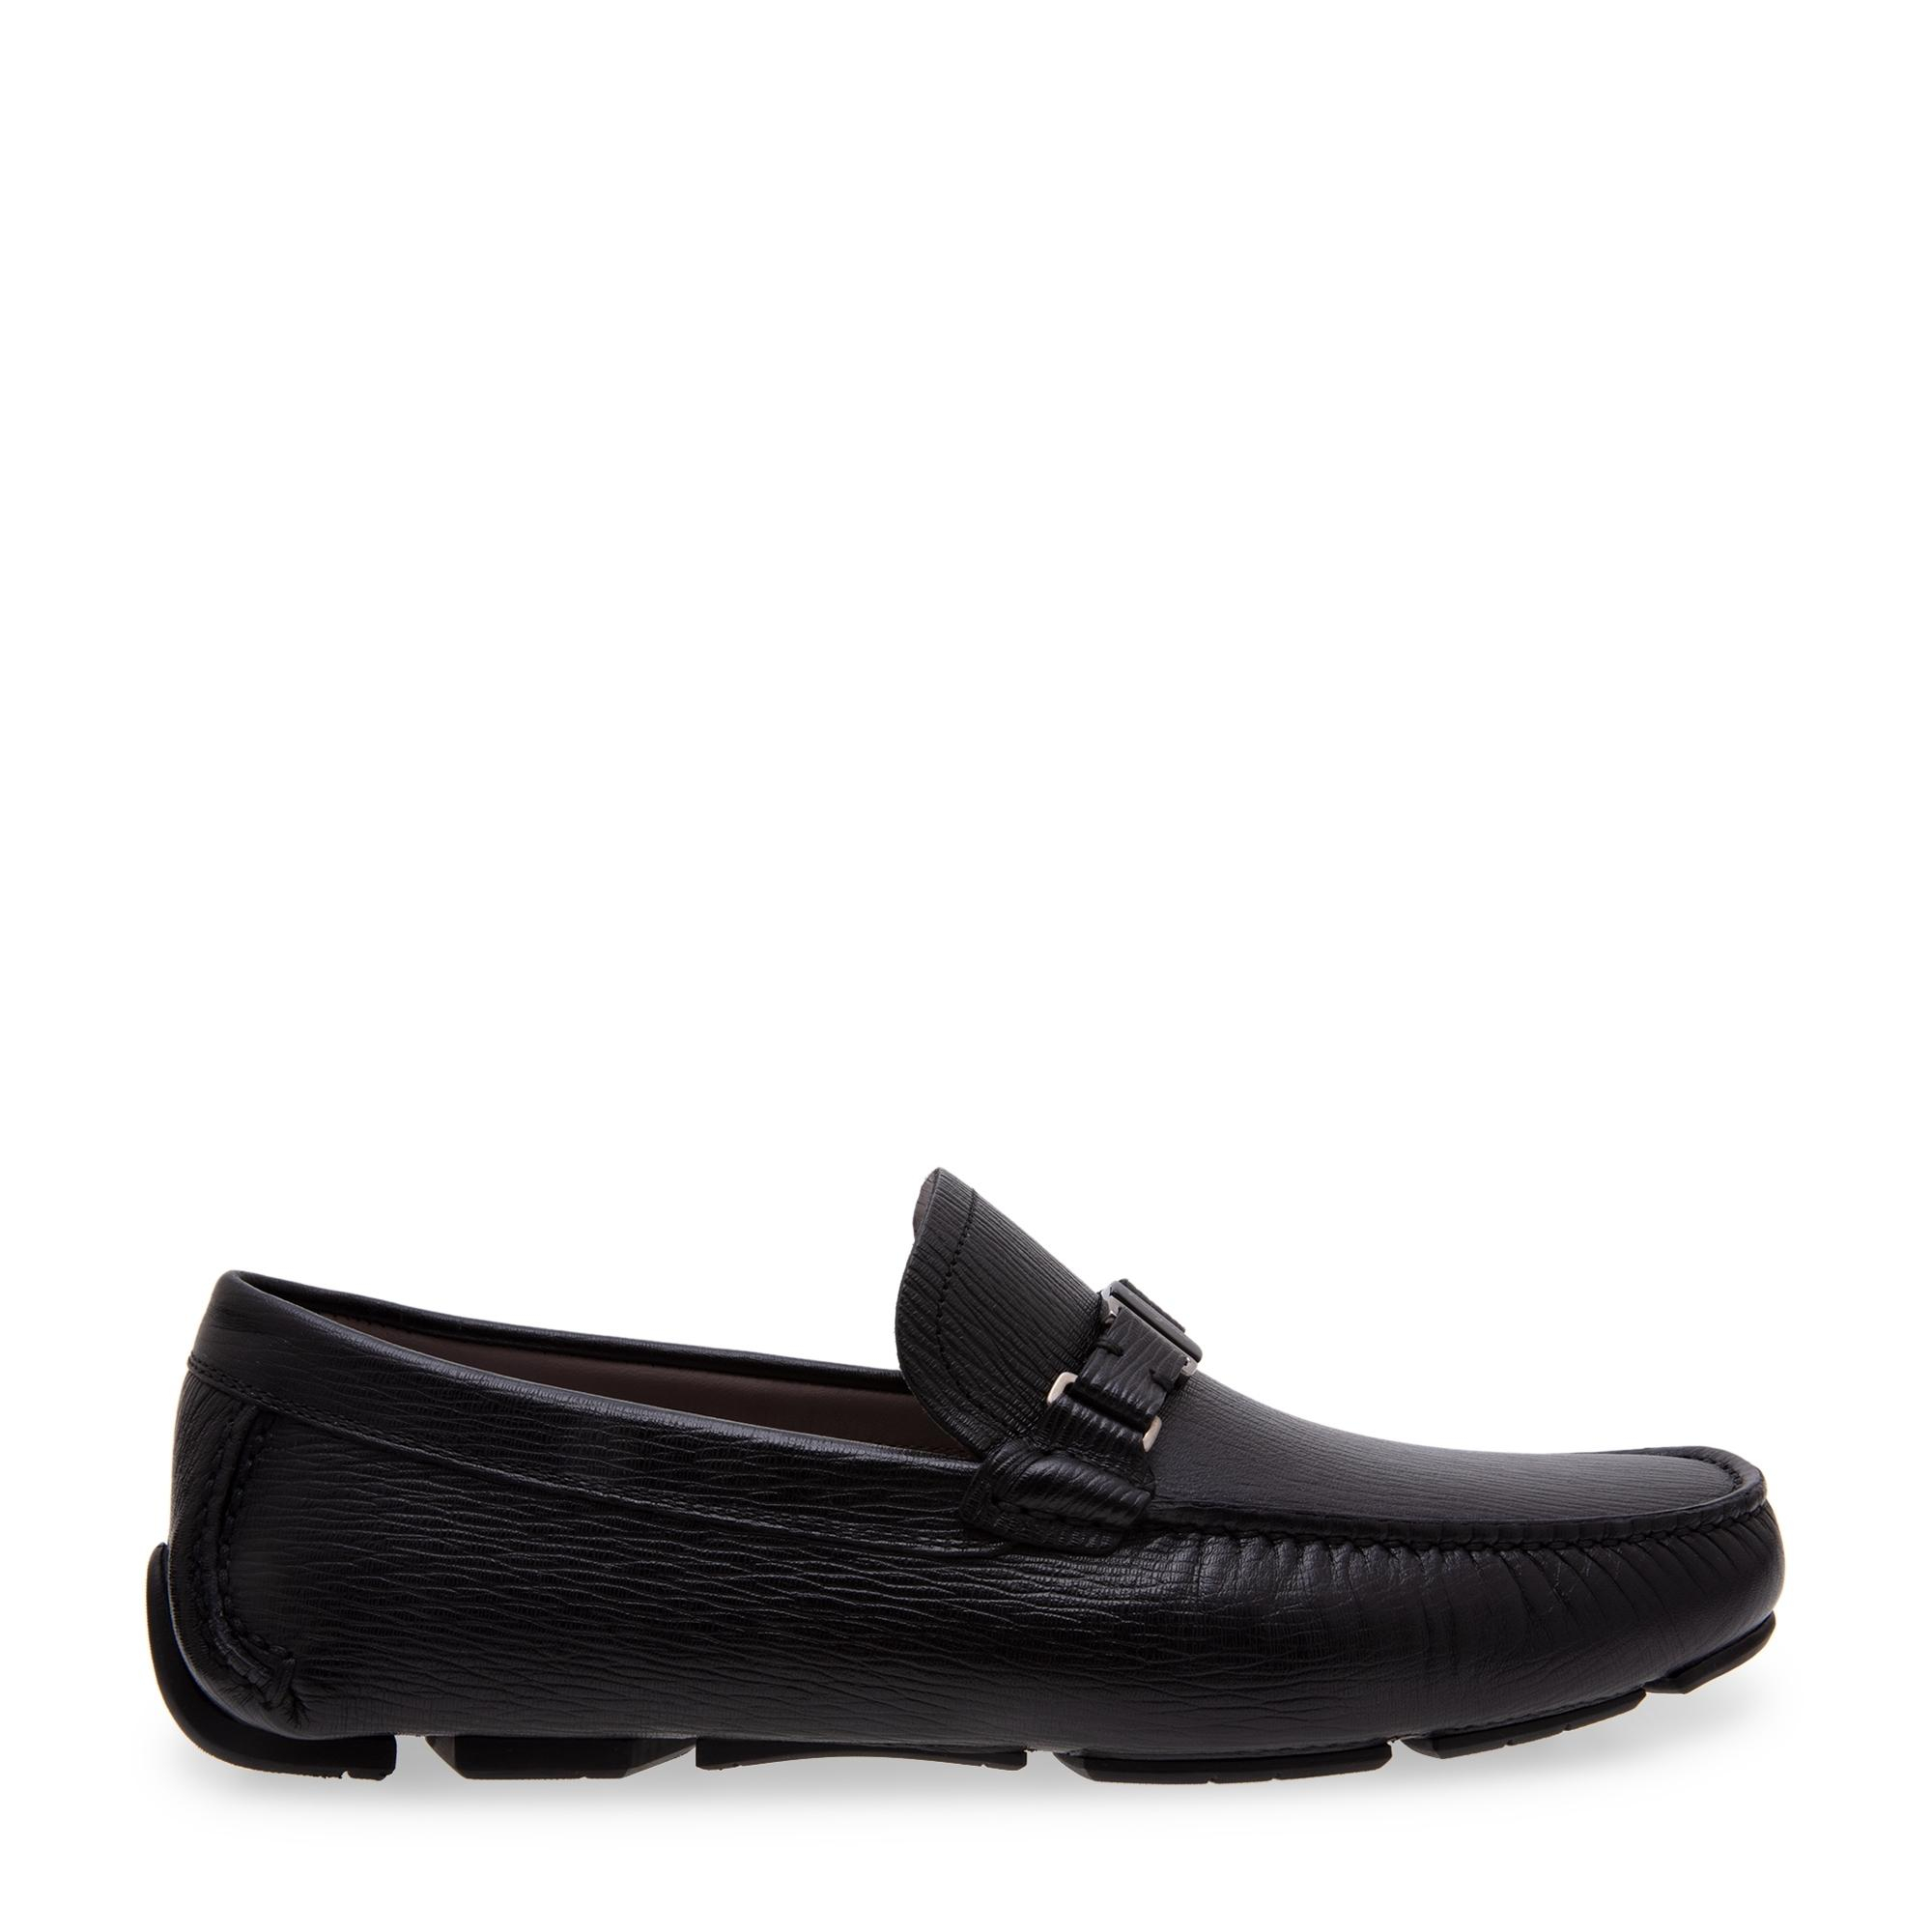 Driver moccasin loafers